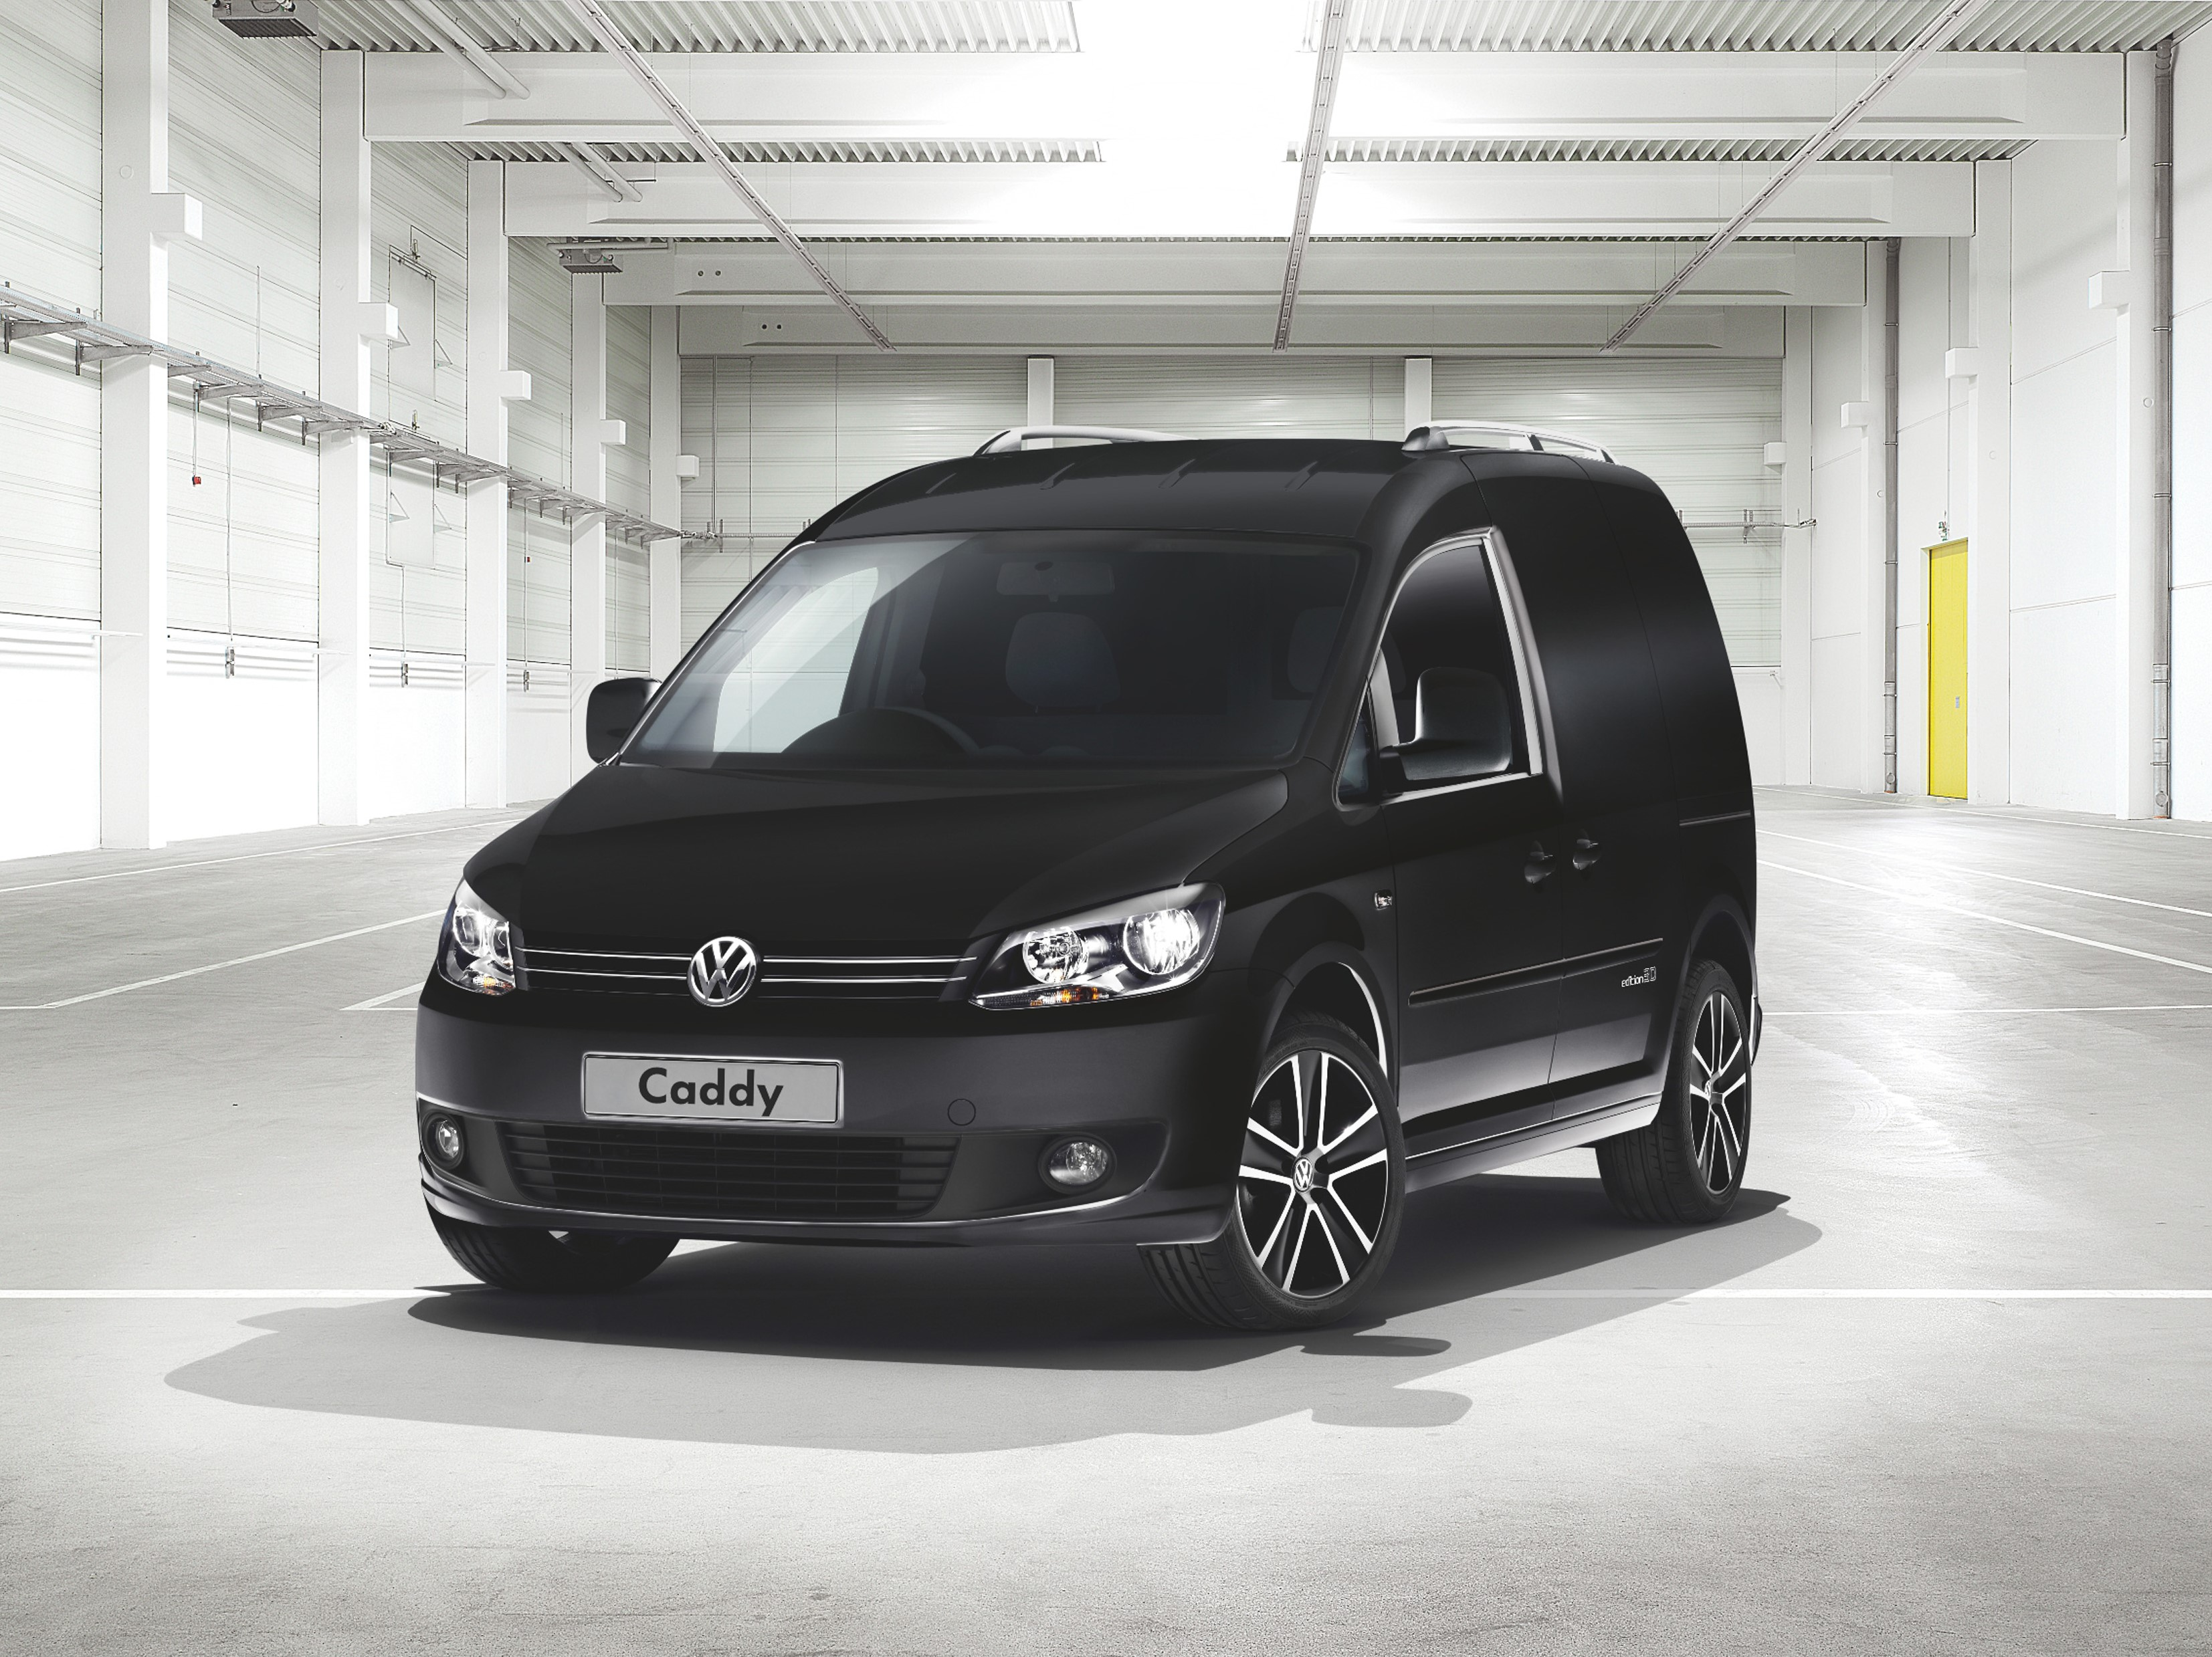 Commercial Vehicle Manufacturers Reviews New Limited Edition Of The Vw Caddy Unveiled